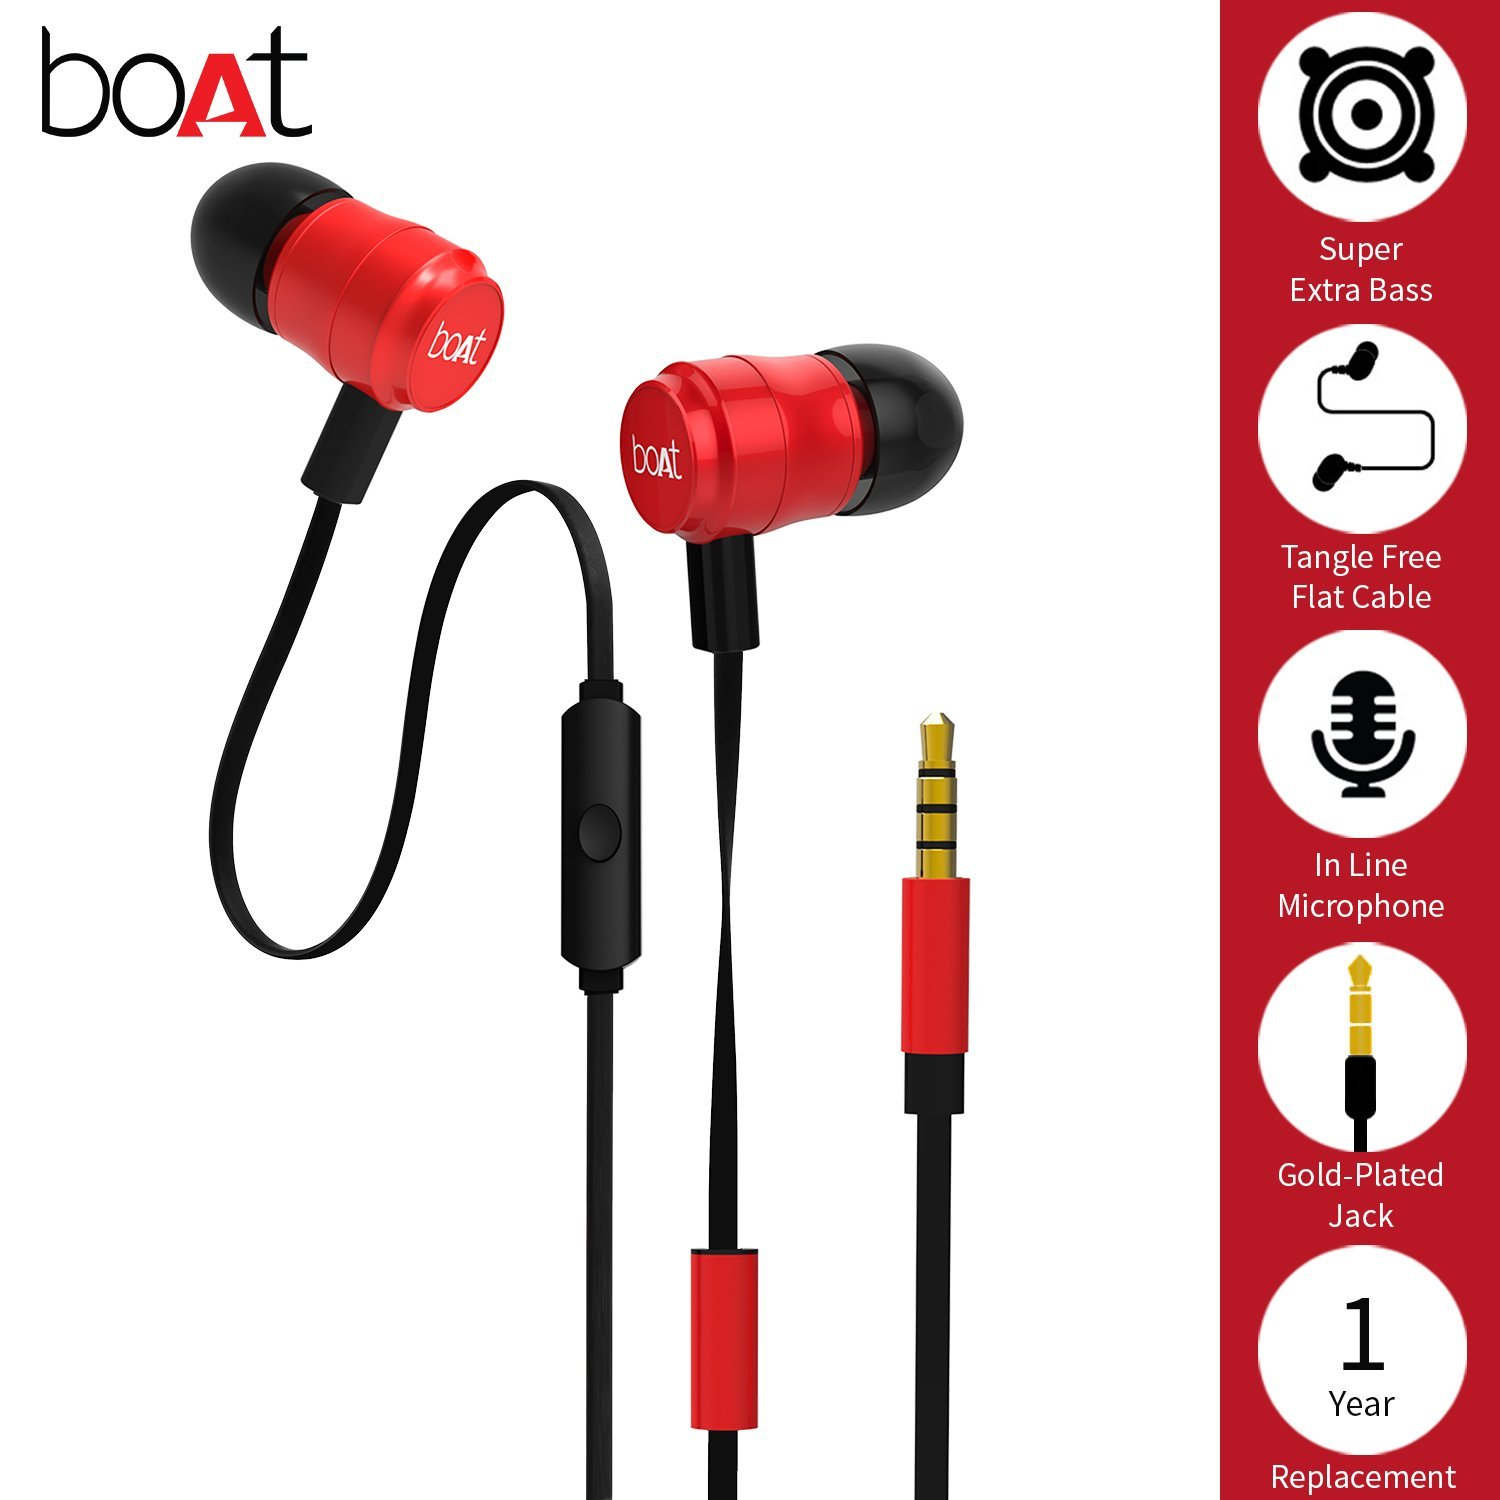 boAt BassHeads 235 In-Ear Extra Bass Earphones with Mic